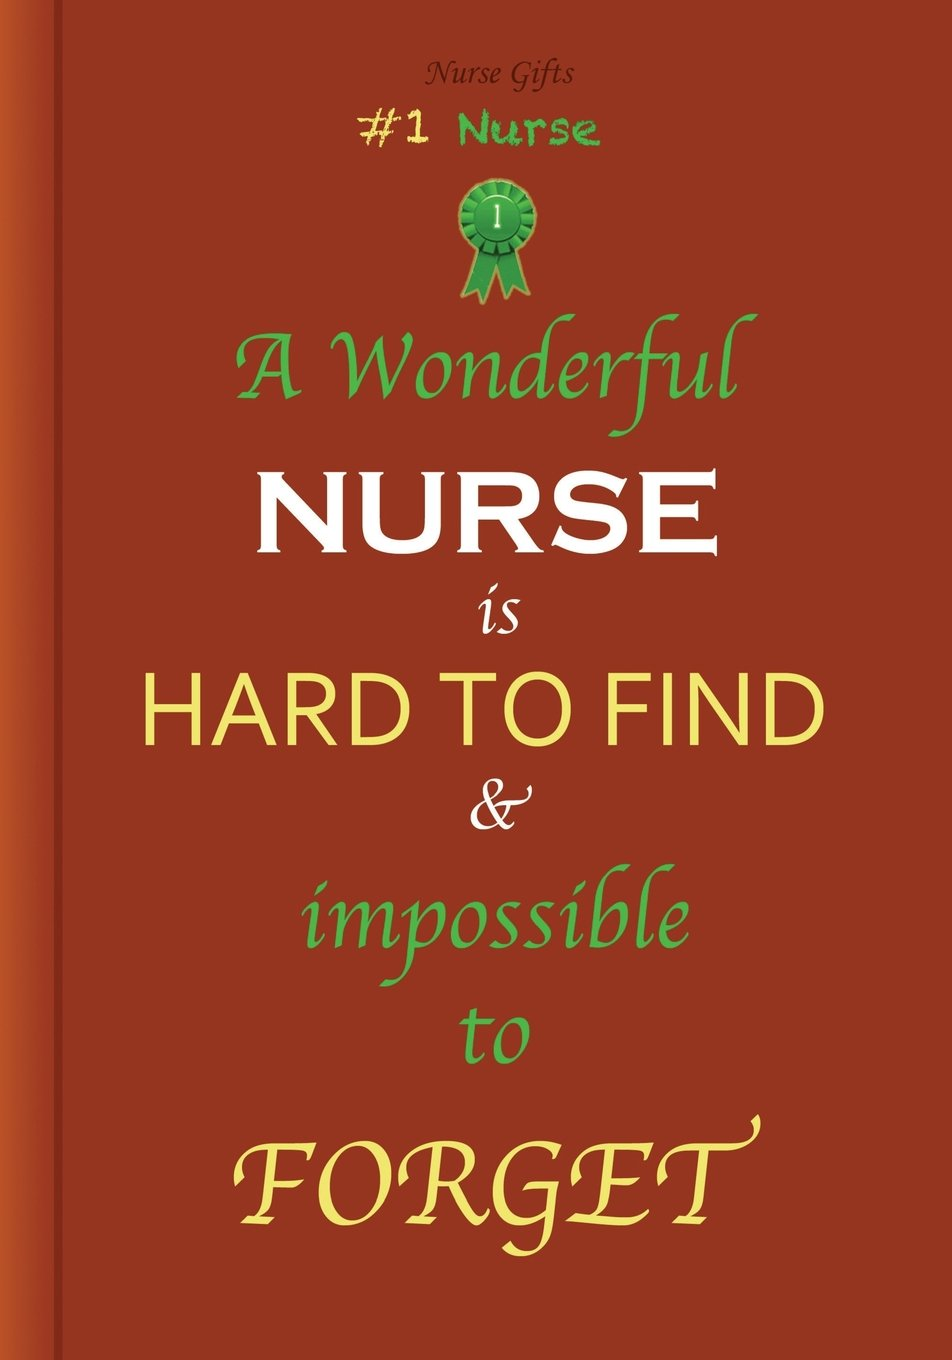 College of Nursing & Midwifery, Dept. of Midwifery, Yola 2021/2022 Nursing Form Is Out Call 09055447